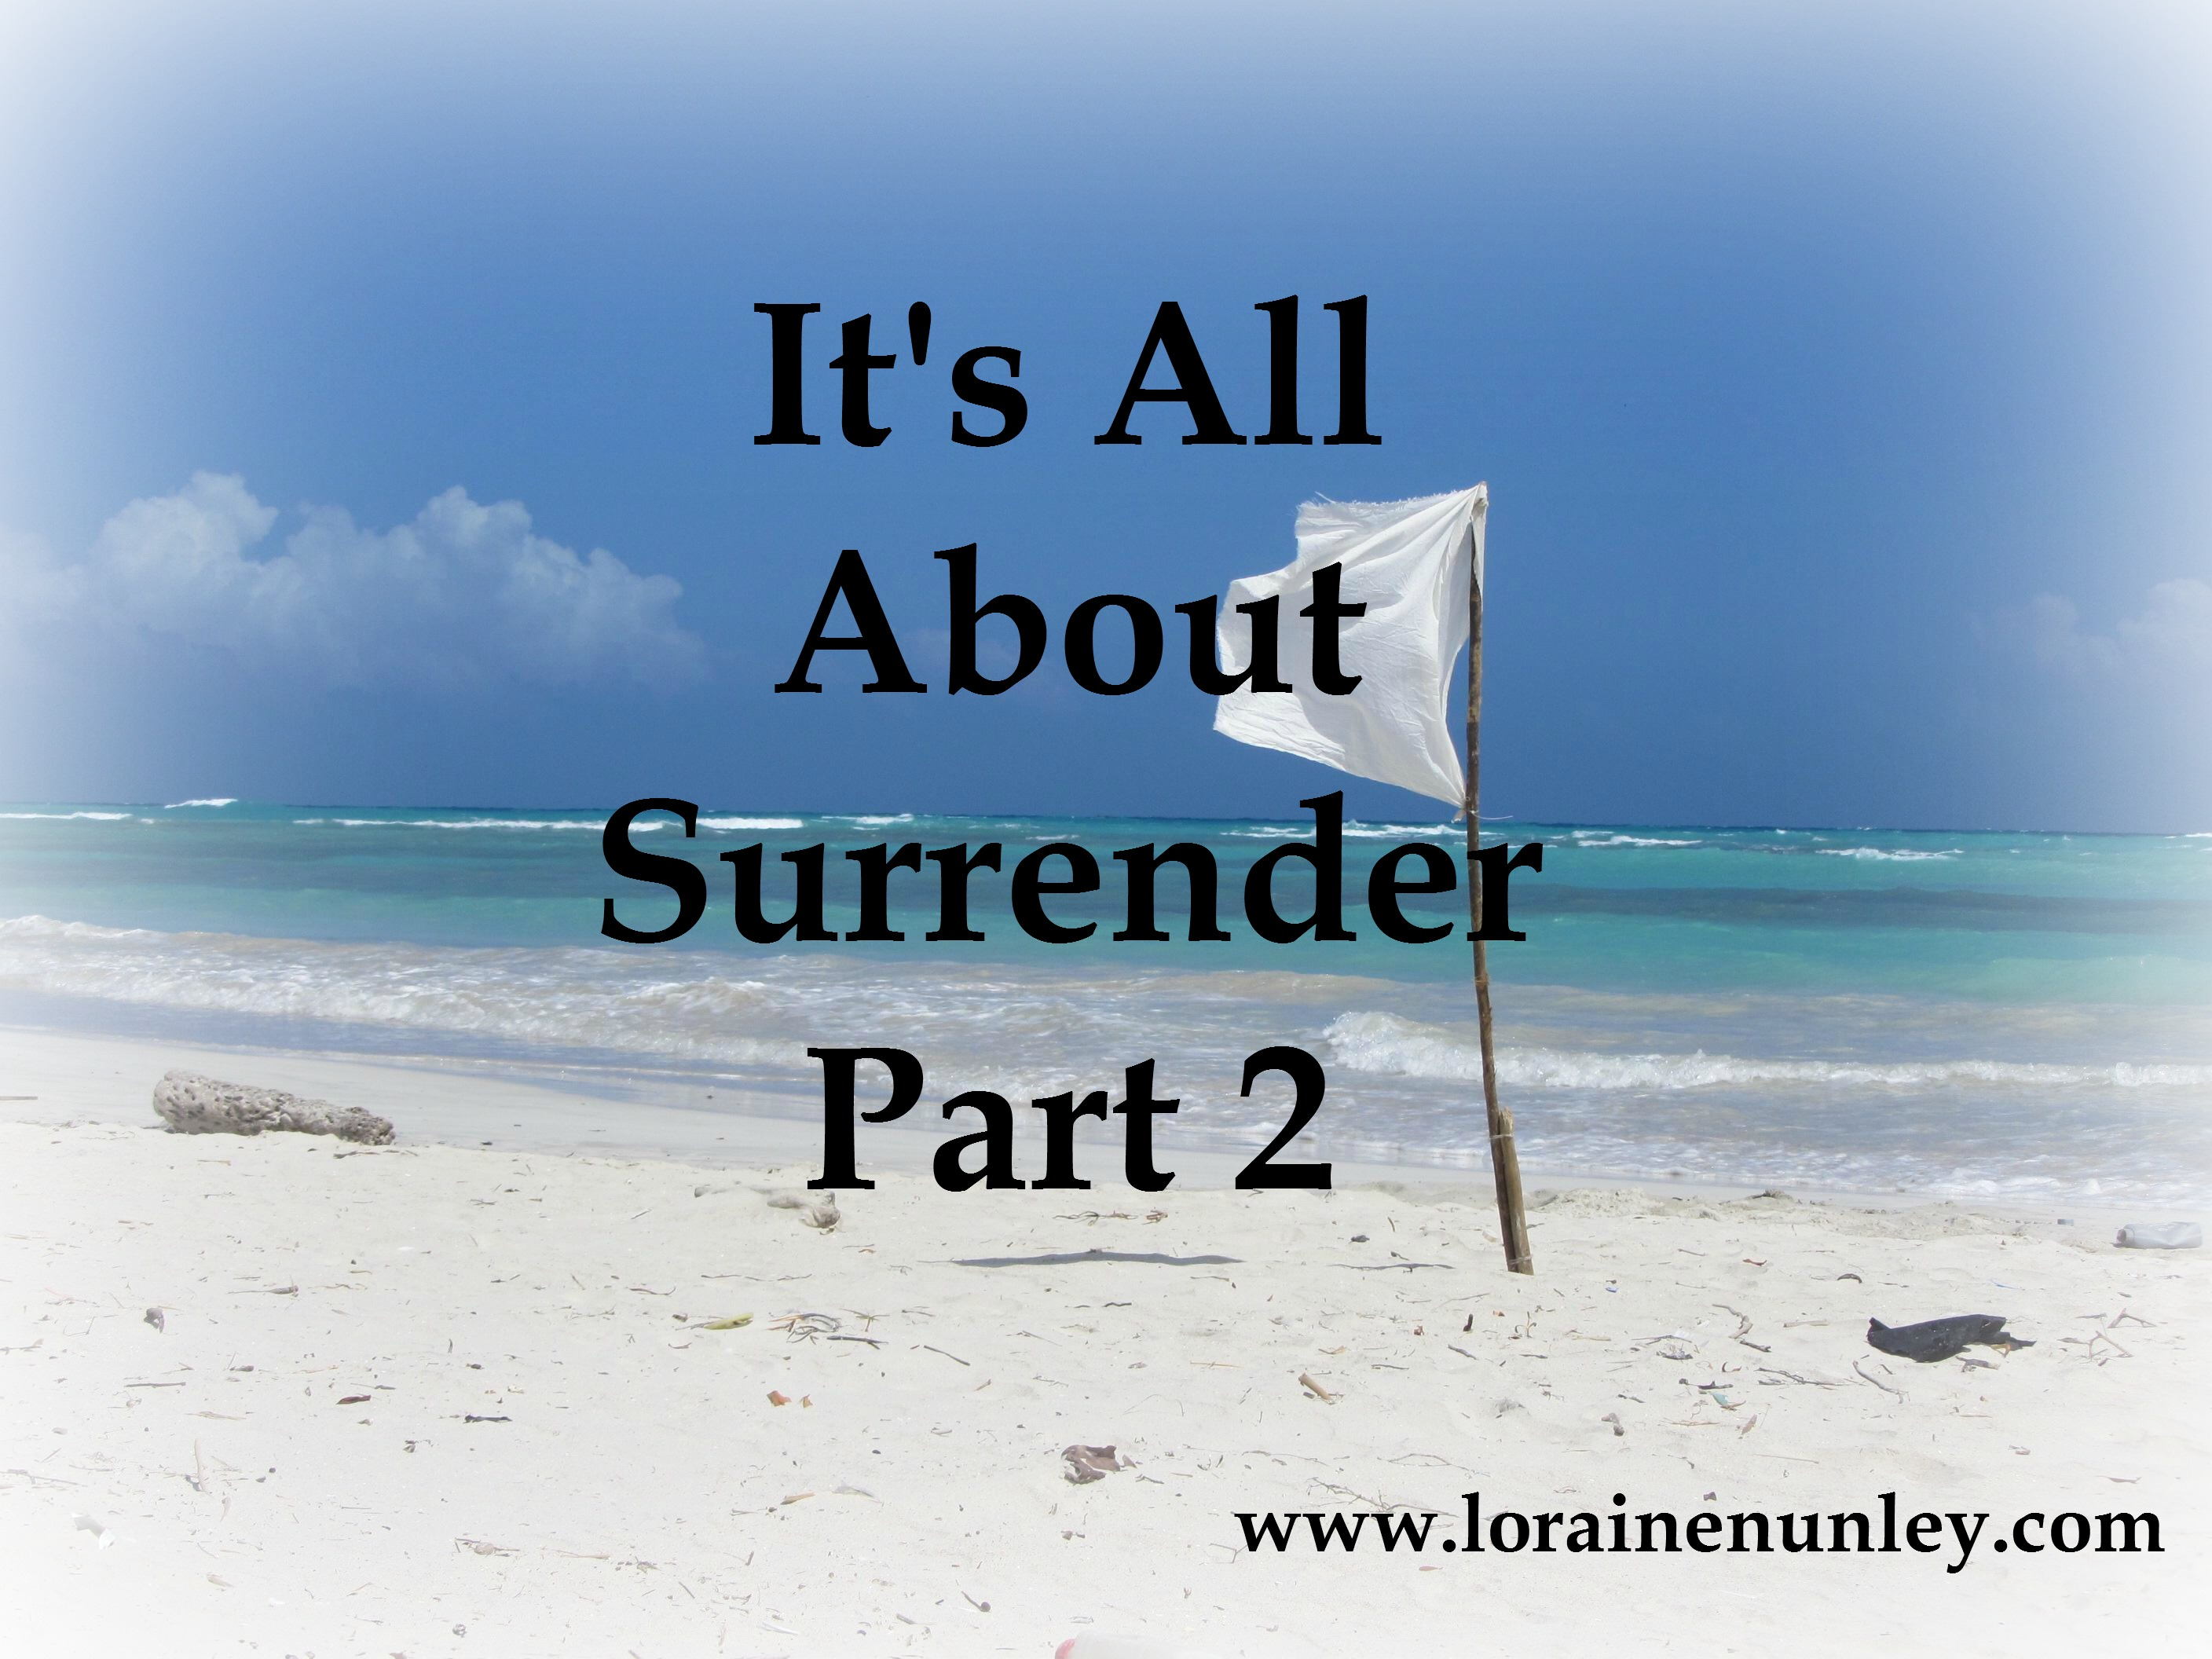 It's all about surrender - Part 2